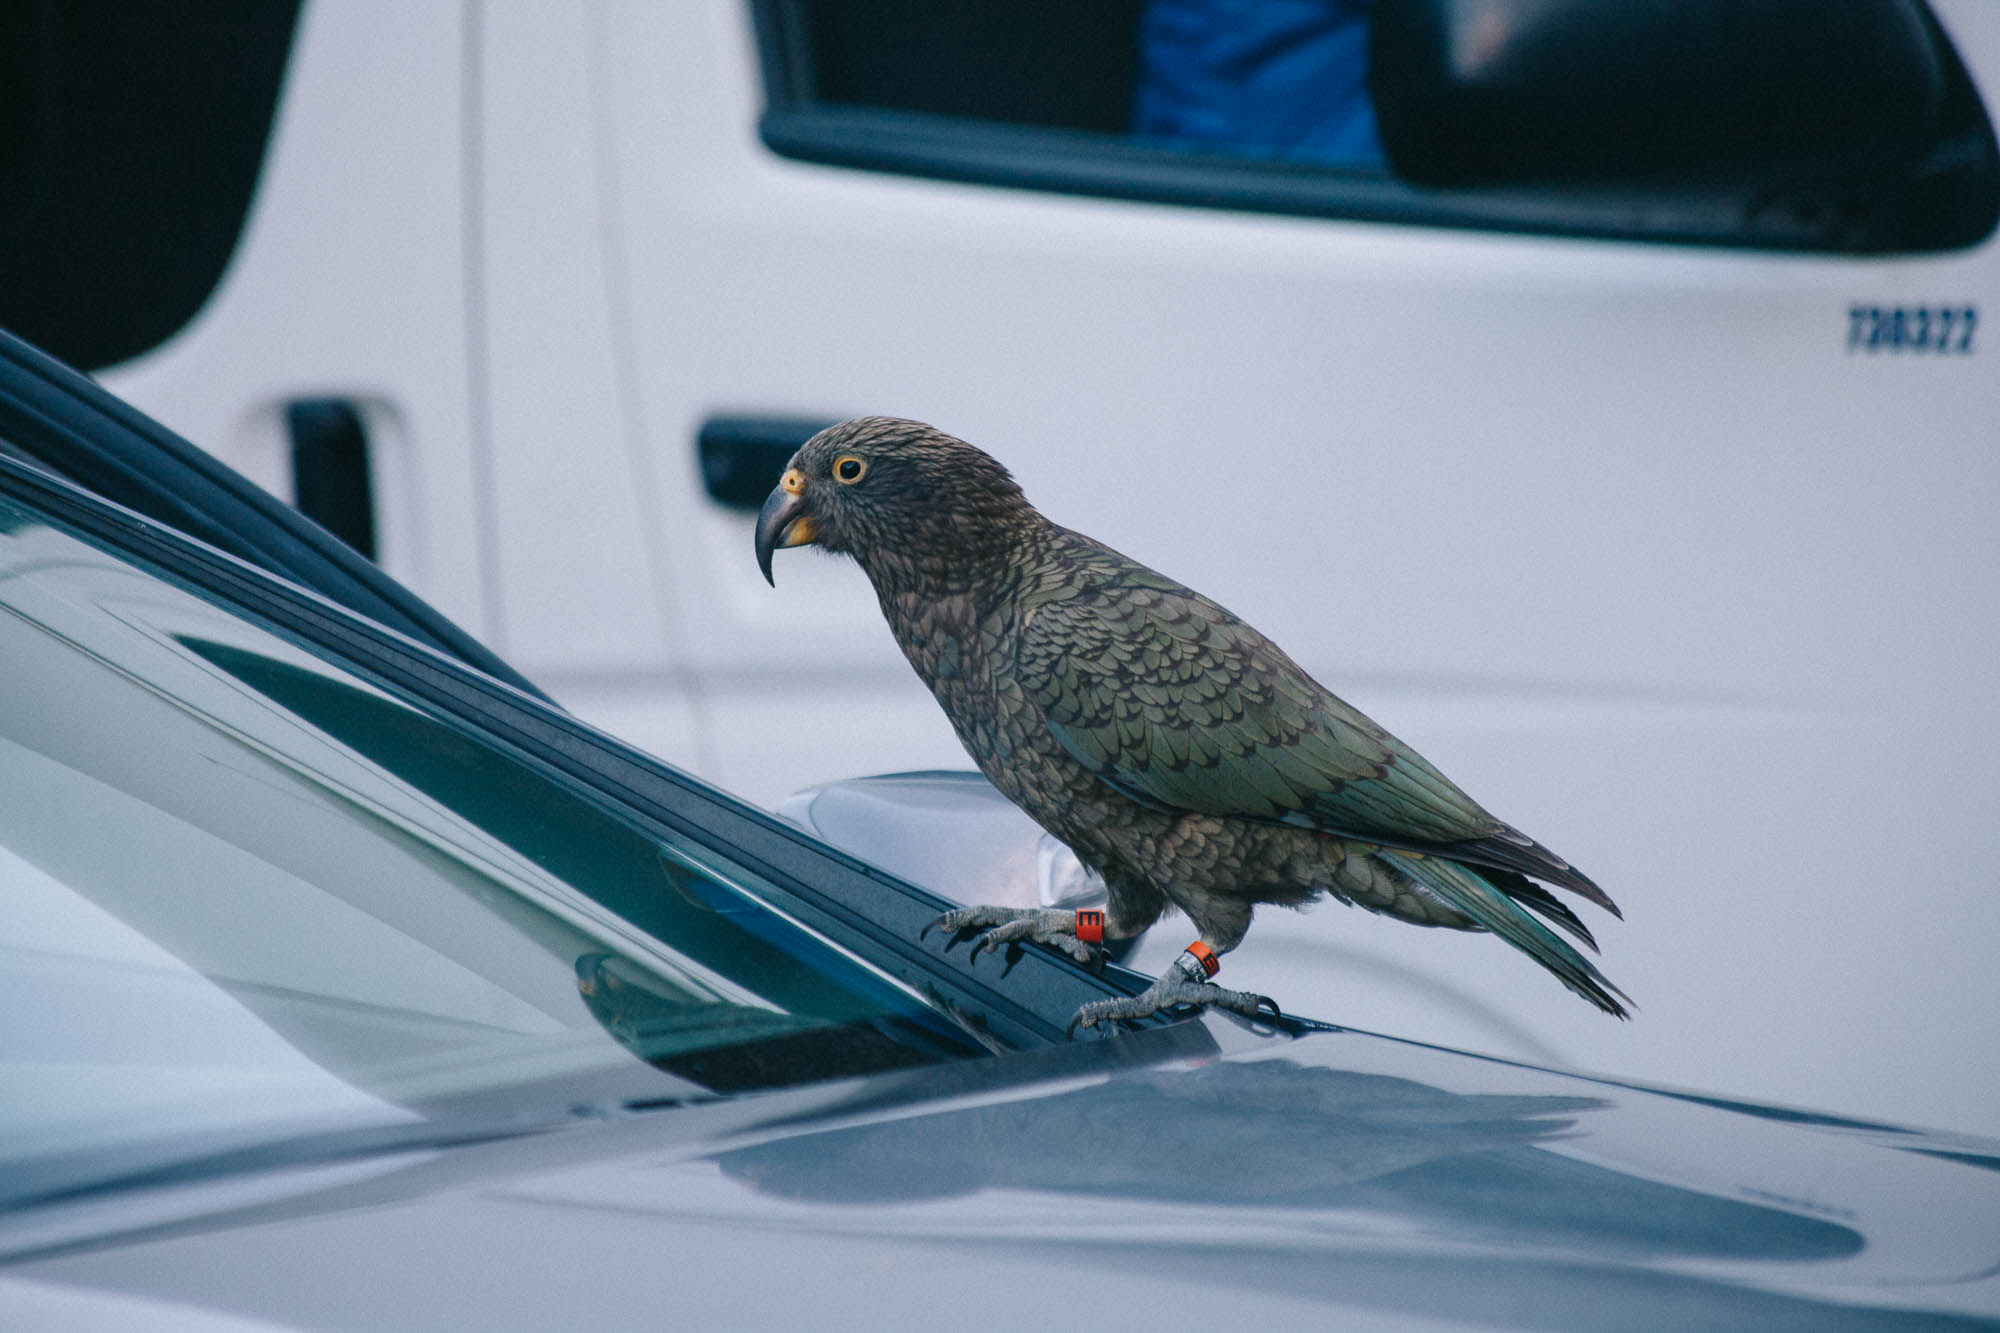 Kea on a car at Arthur's Pass New Zealand (c) Leonie Wise